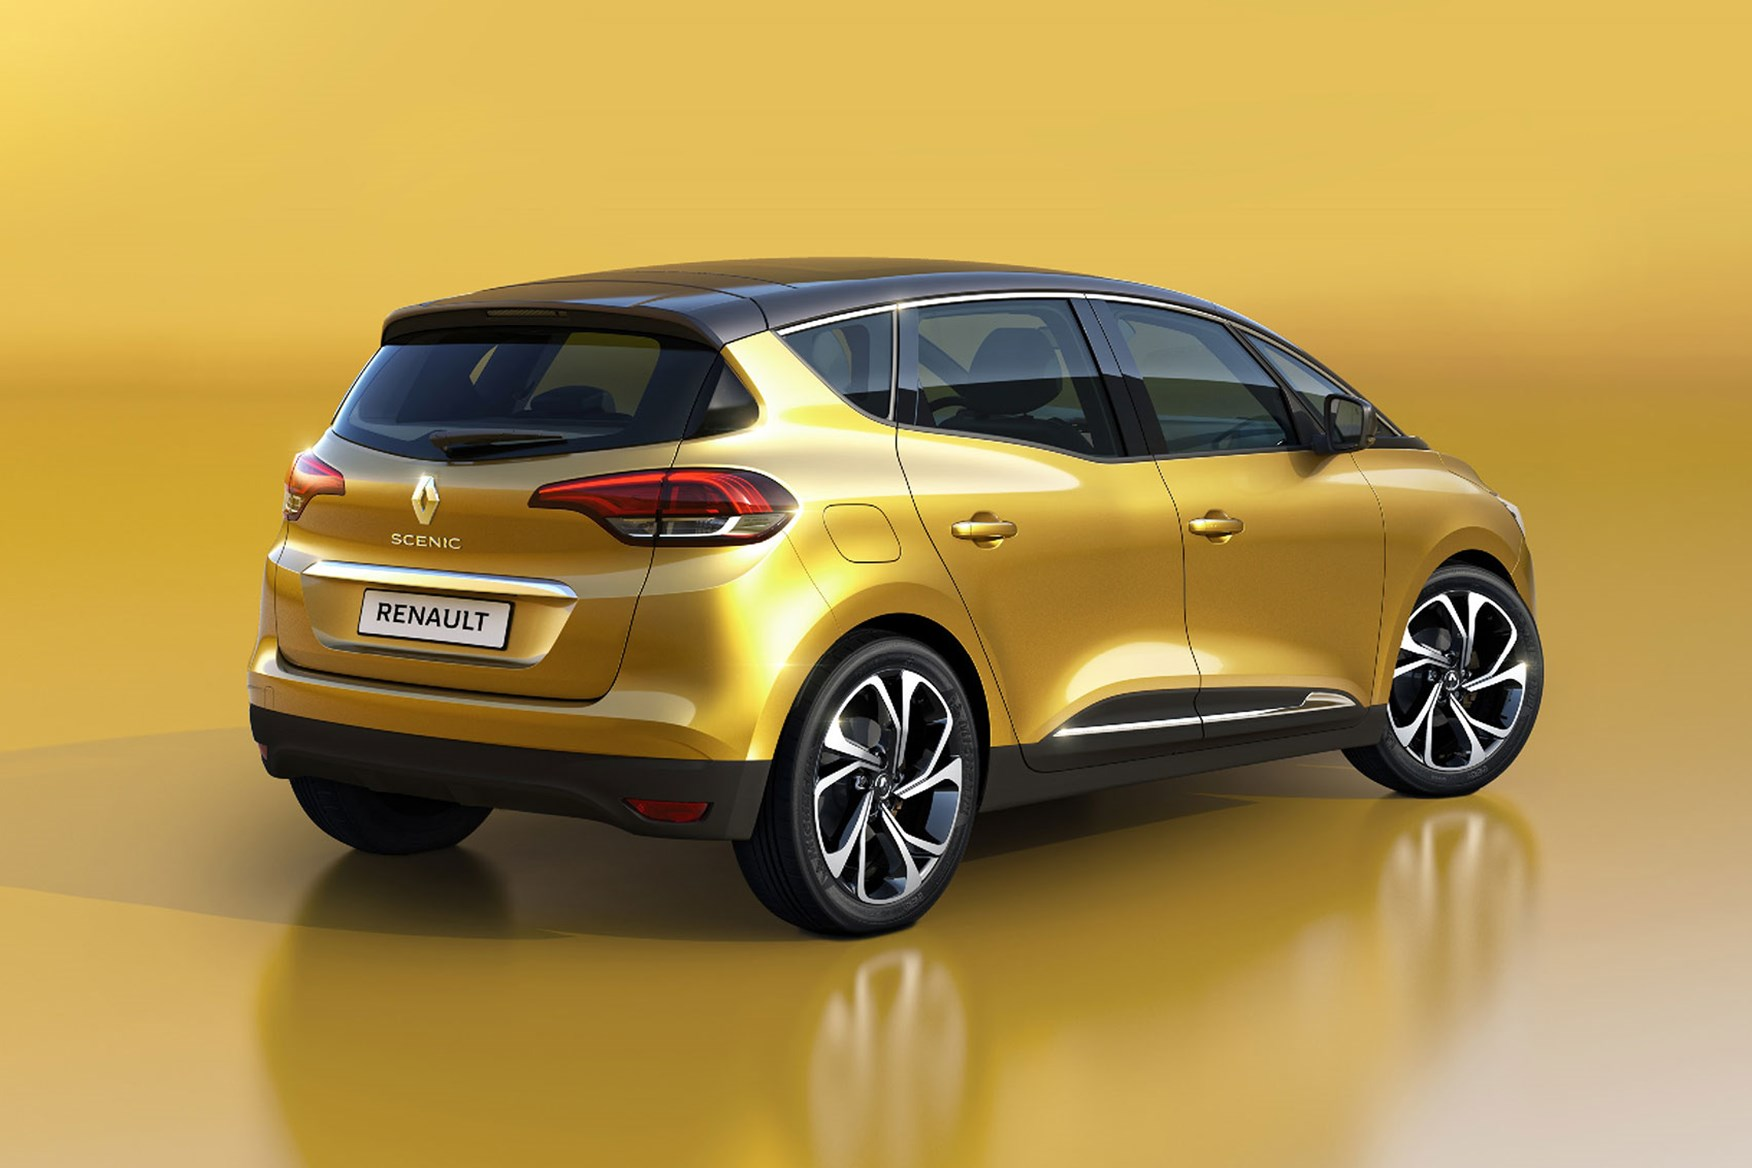 New Renault Scenic 2016 review | Auto Express